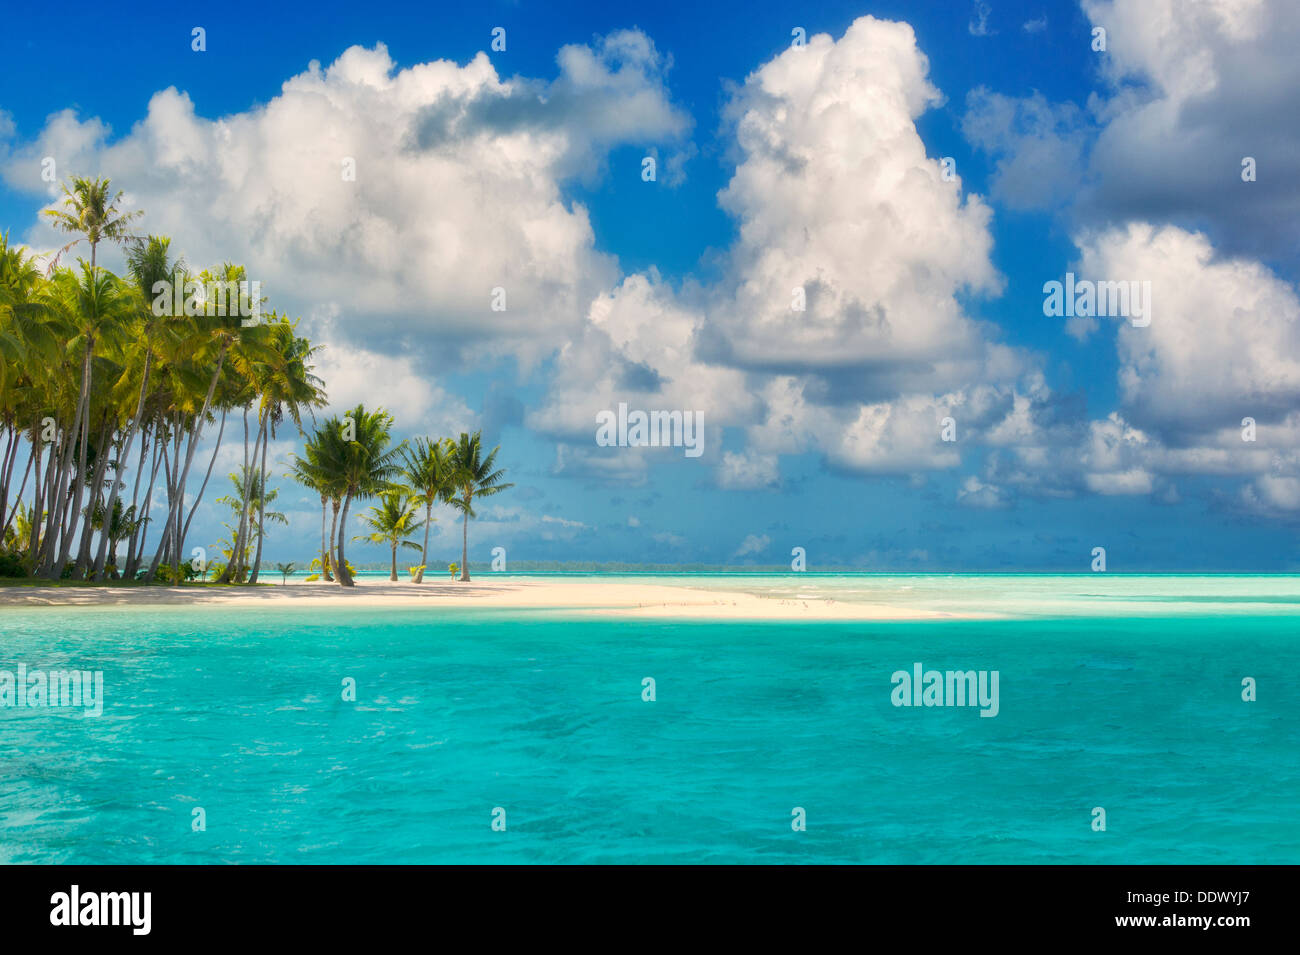 Small island in Bora Bora. French Polynesia - Stock Image